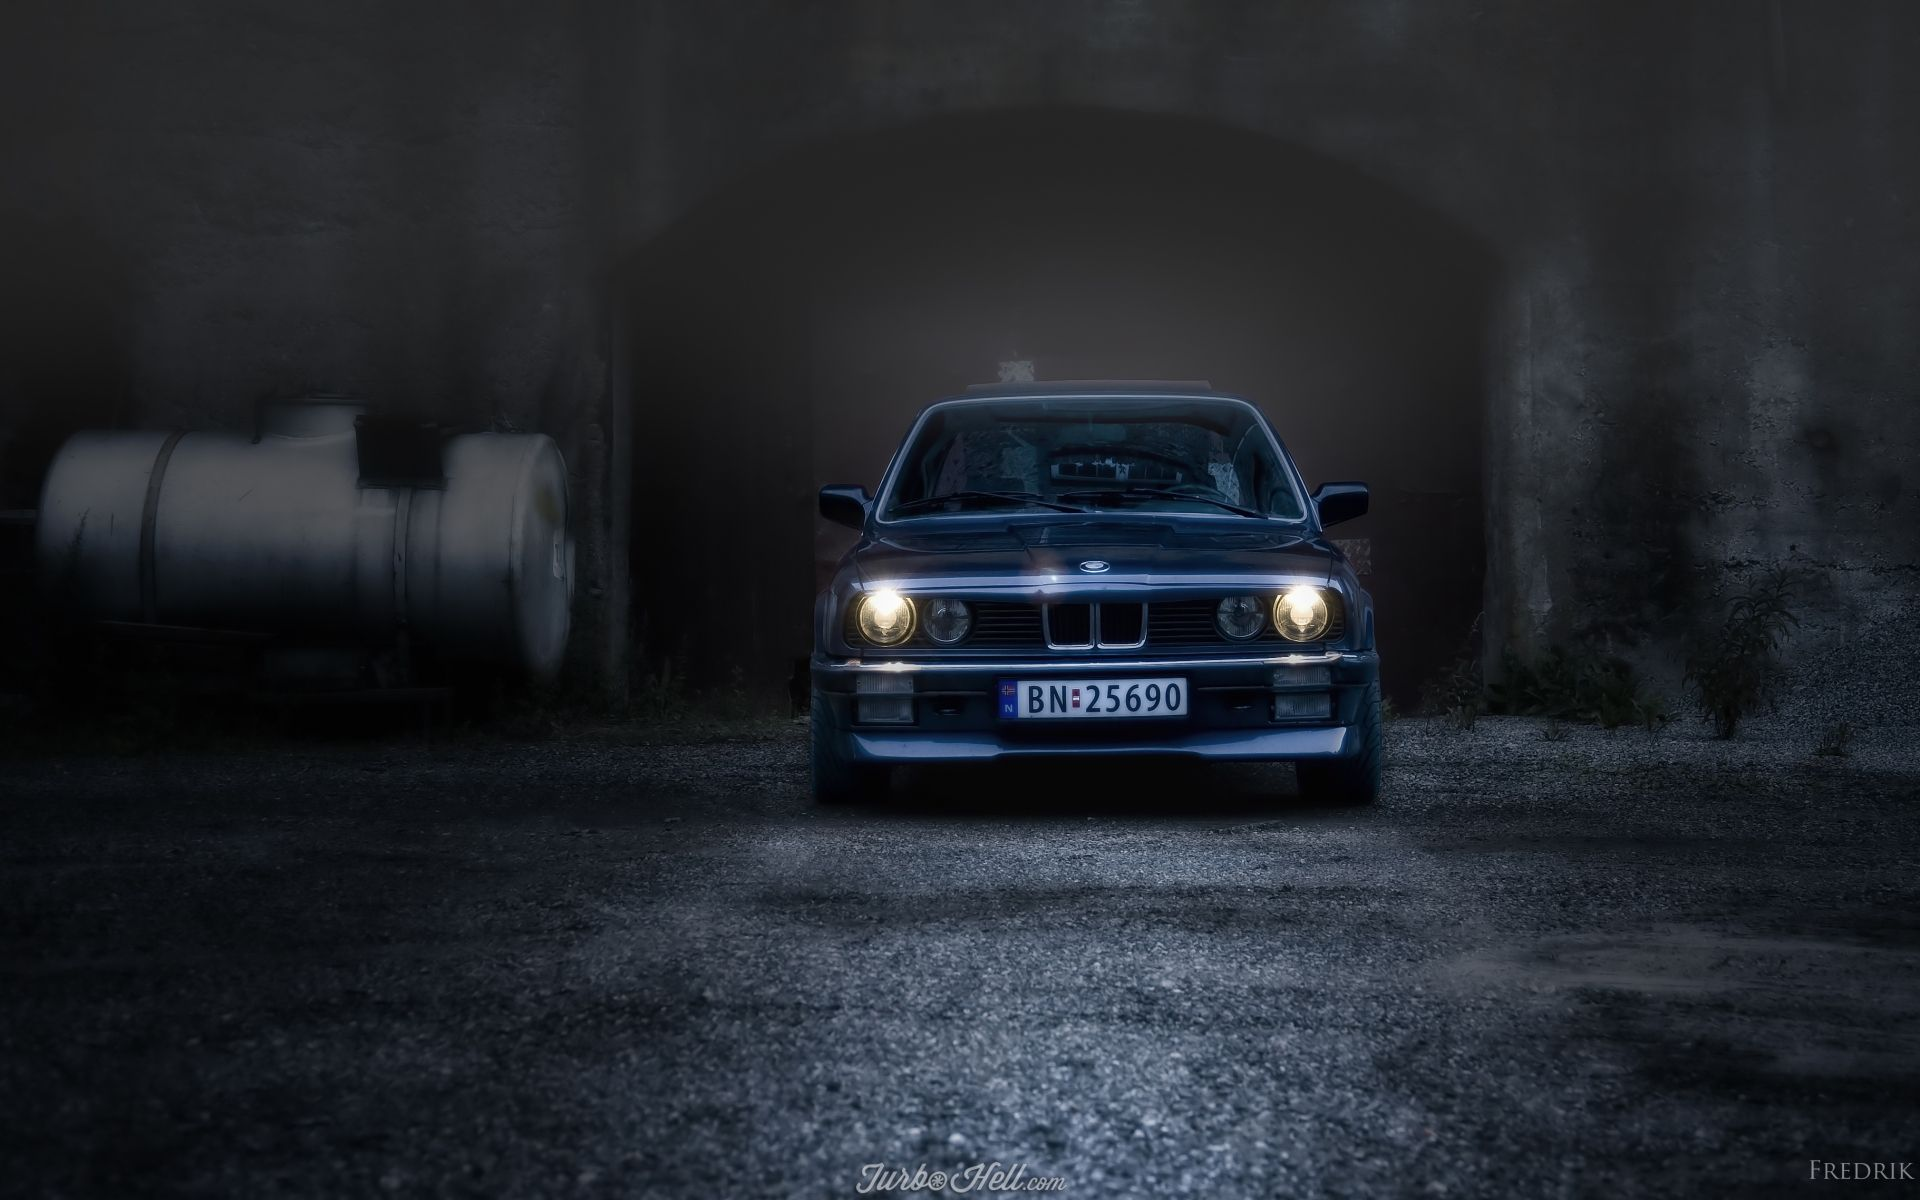 1920x1080 Wallpaper Bmw Headlights Black Style Bmw Wallpapers